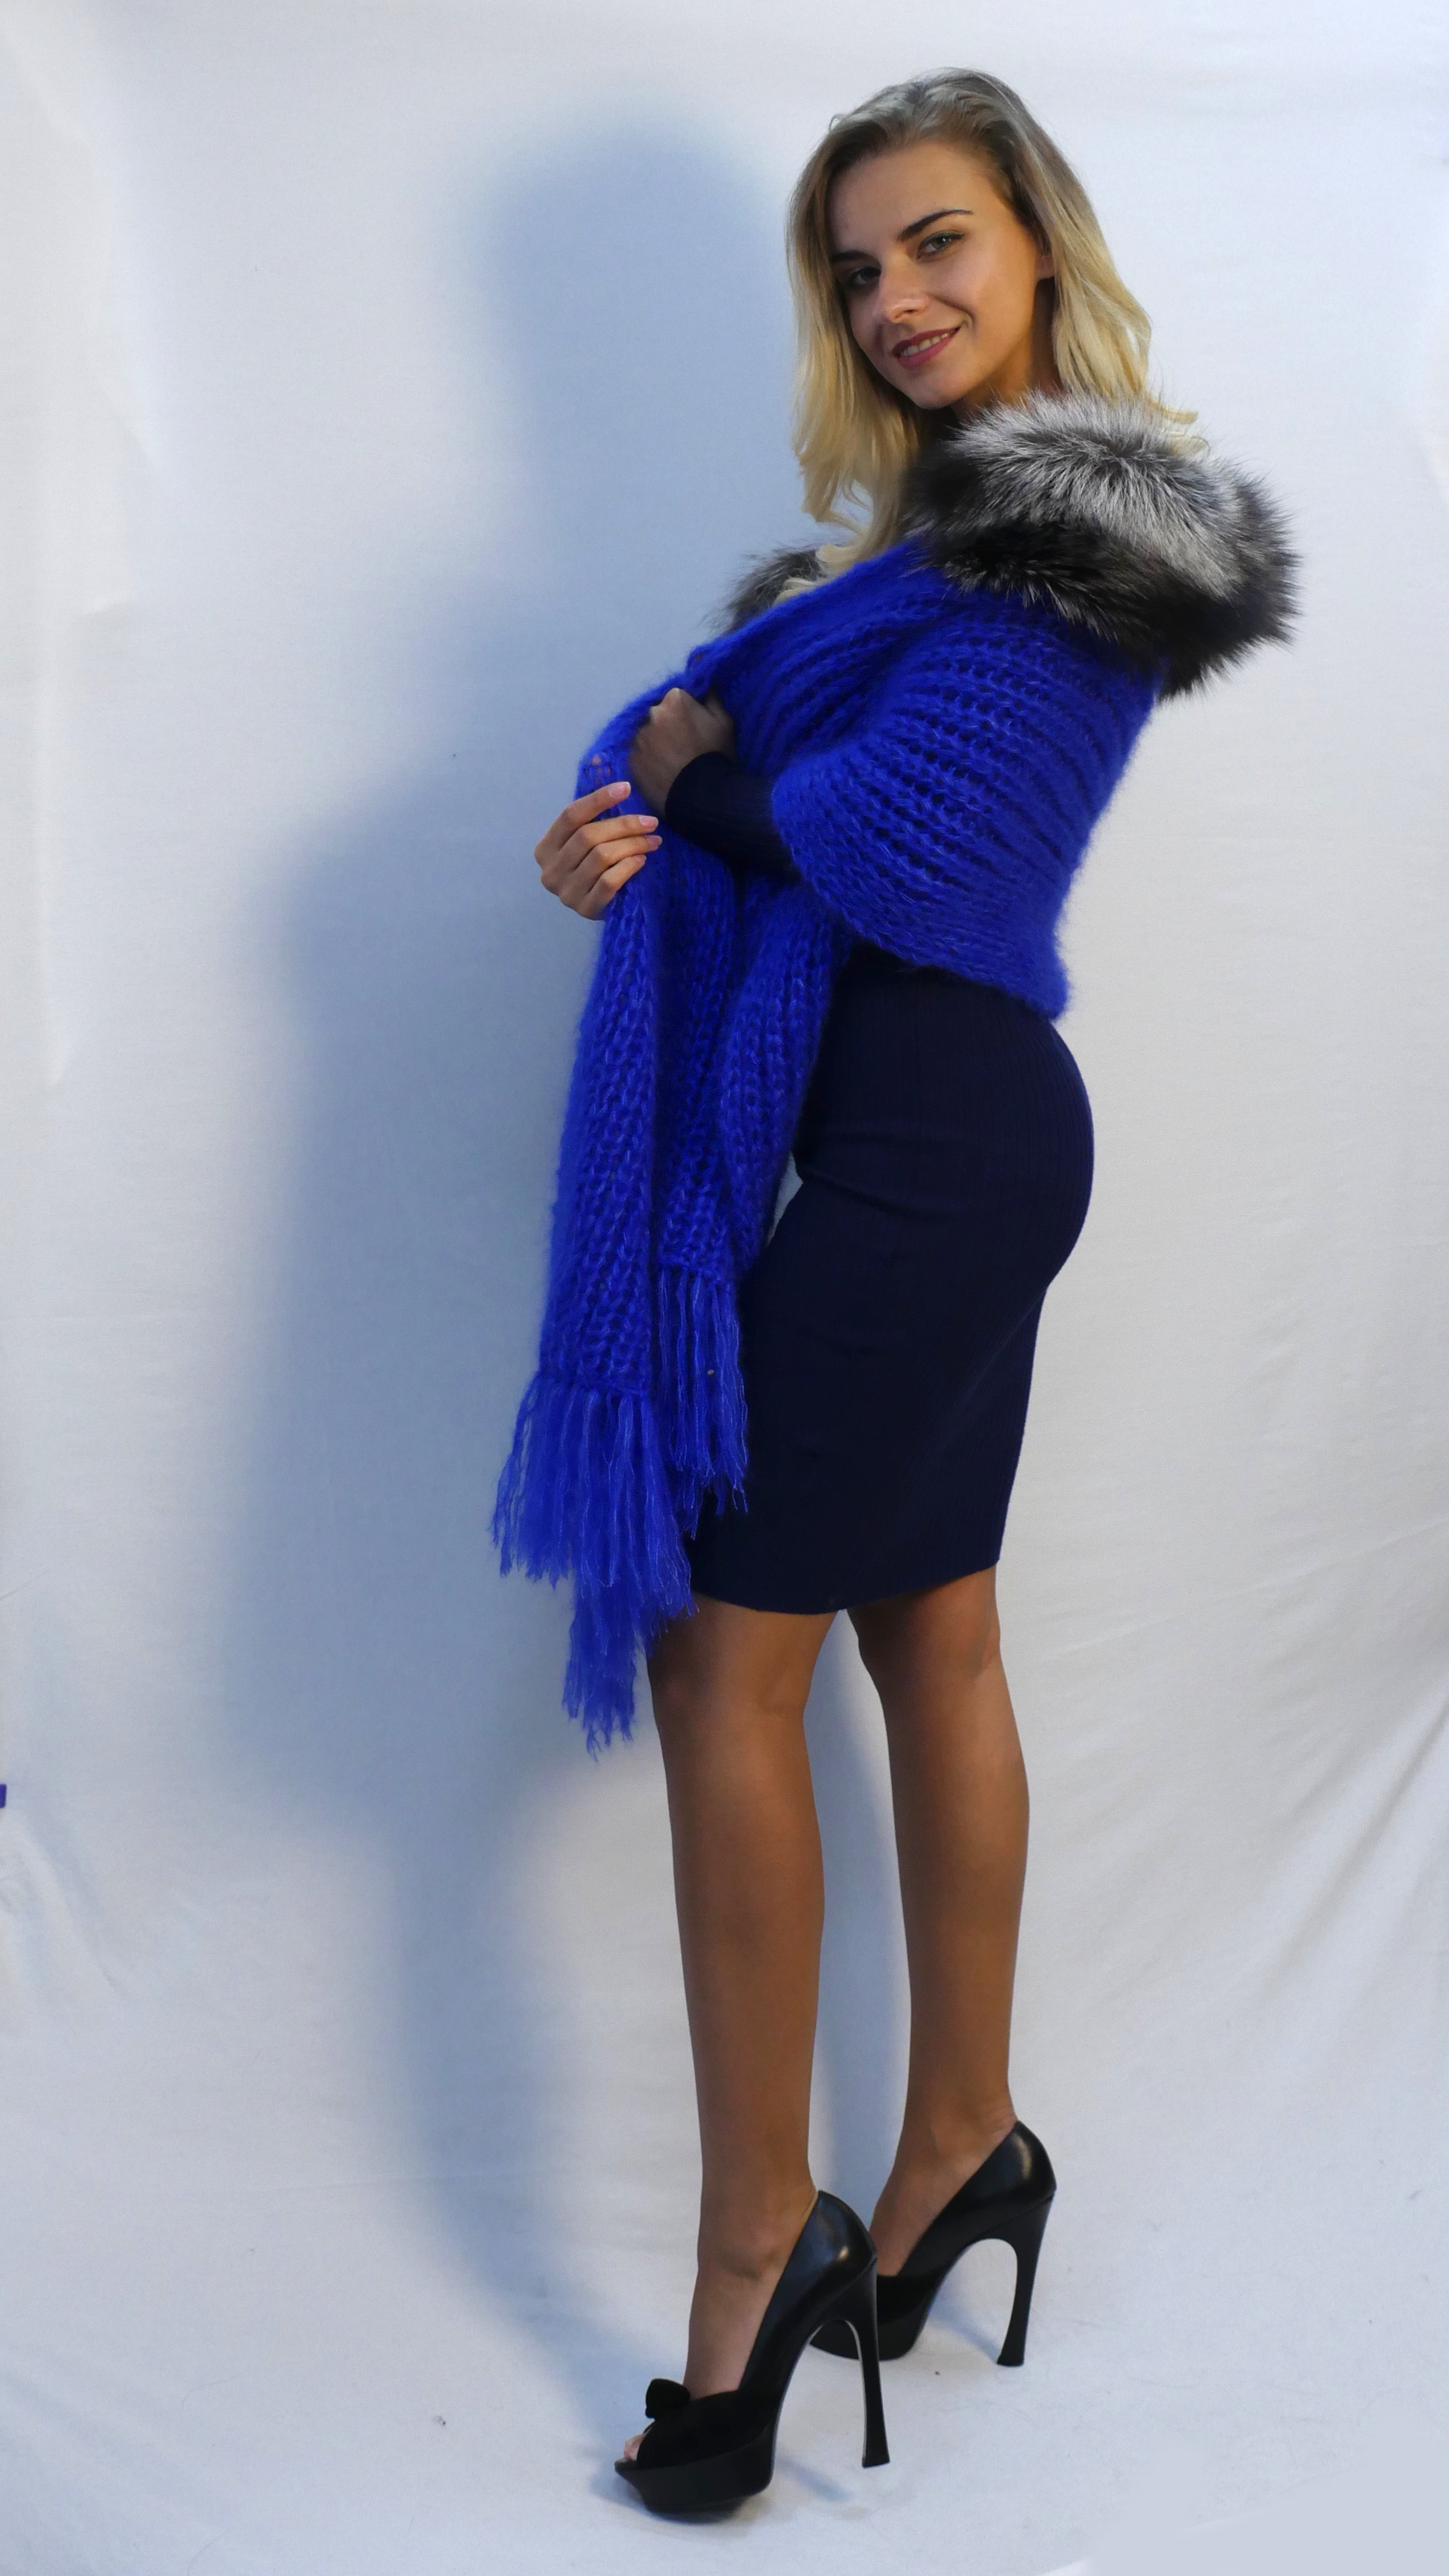 handknitted shawl in soft royal blue mohair with silver fox fur trim and fringes